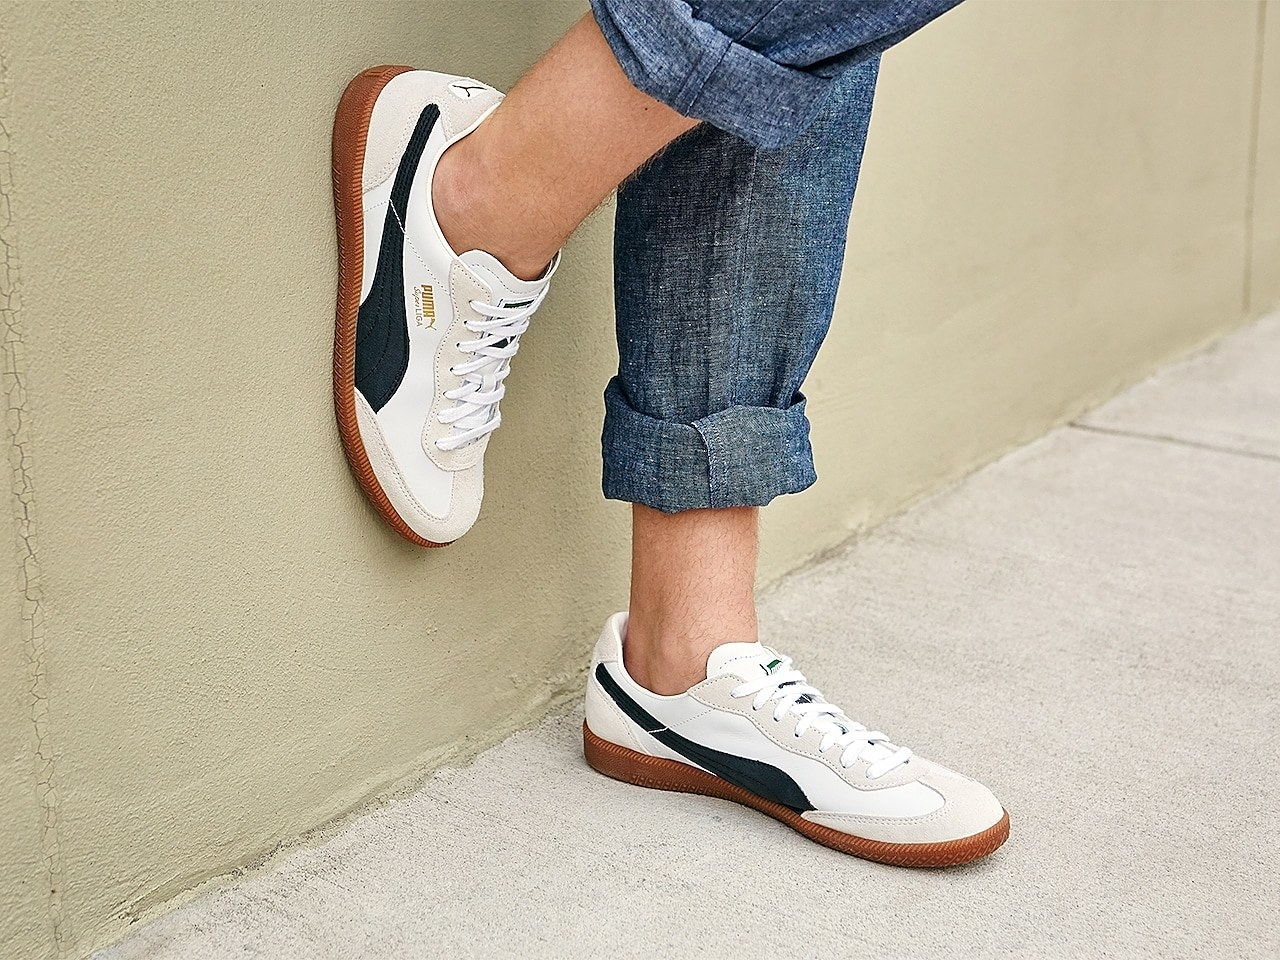 model wearing the beige and white sneakers with tan sole and blue wave on the sides